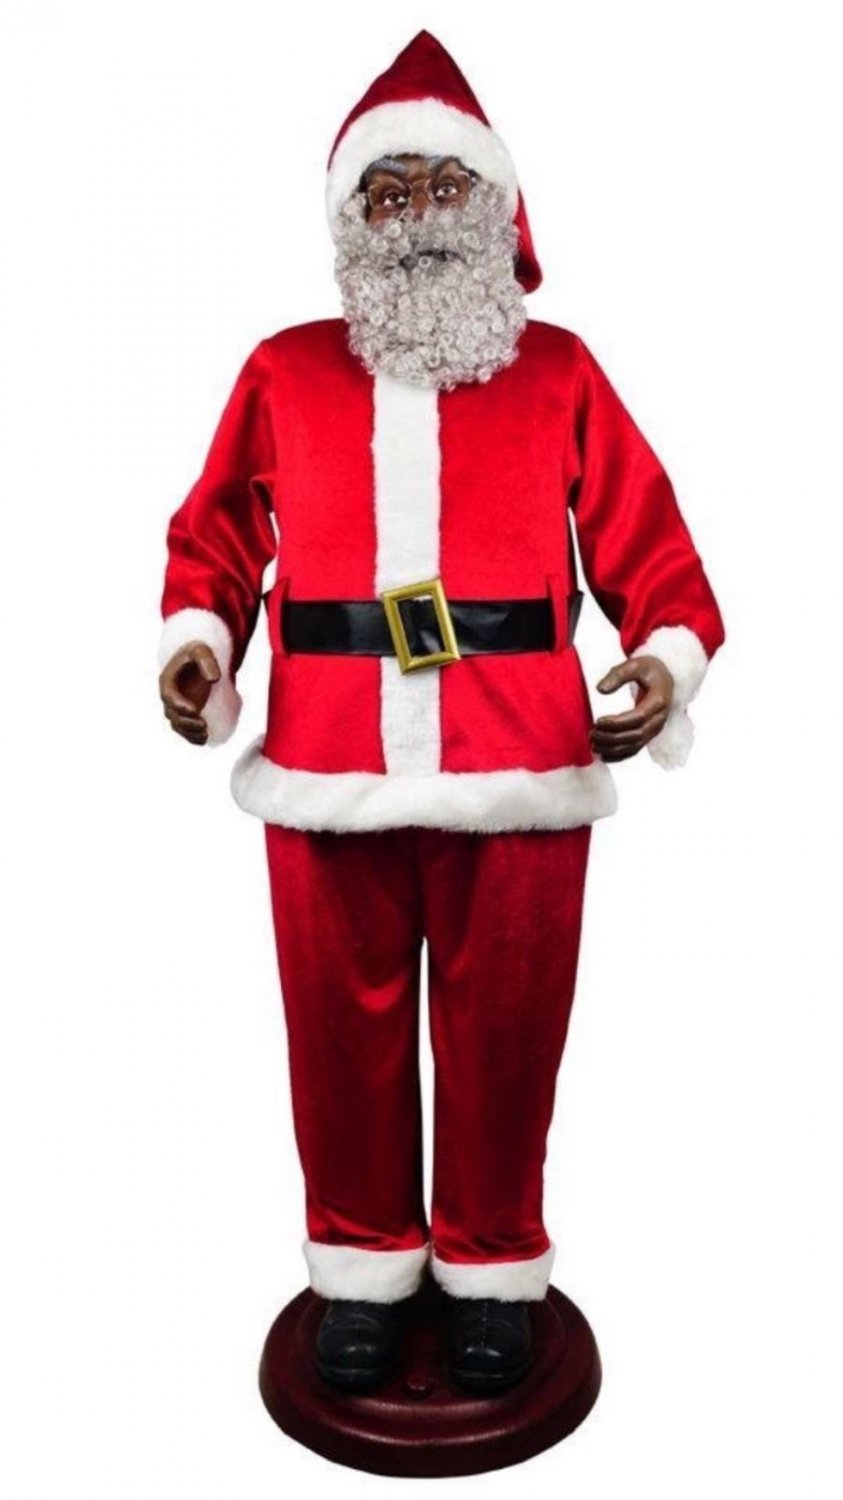 LIFE SIZE African American ANIMATED BLACK SANTA CLAUS SIX FEET TALL! Christmas prop (72 inches)